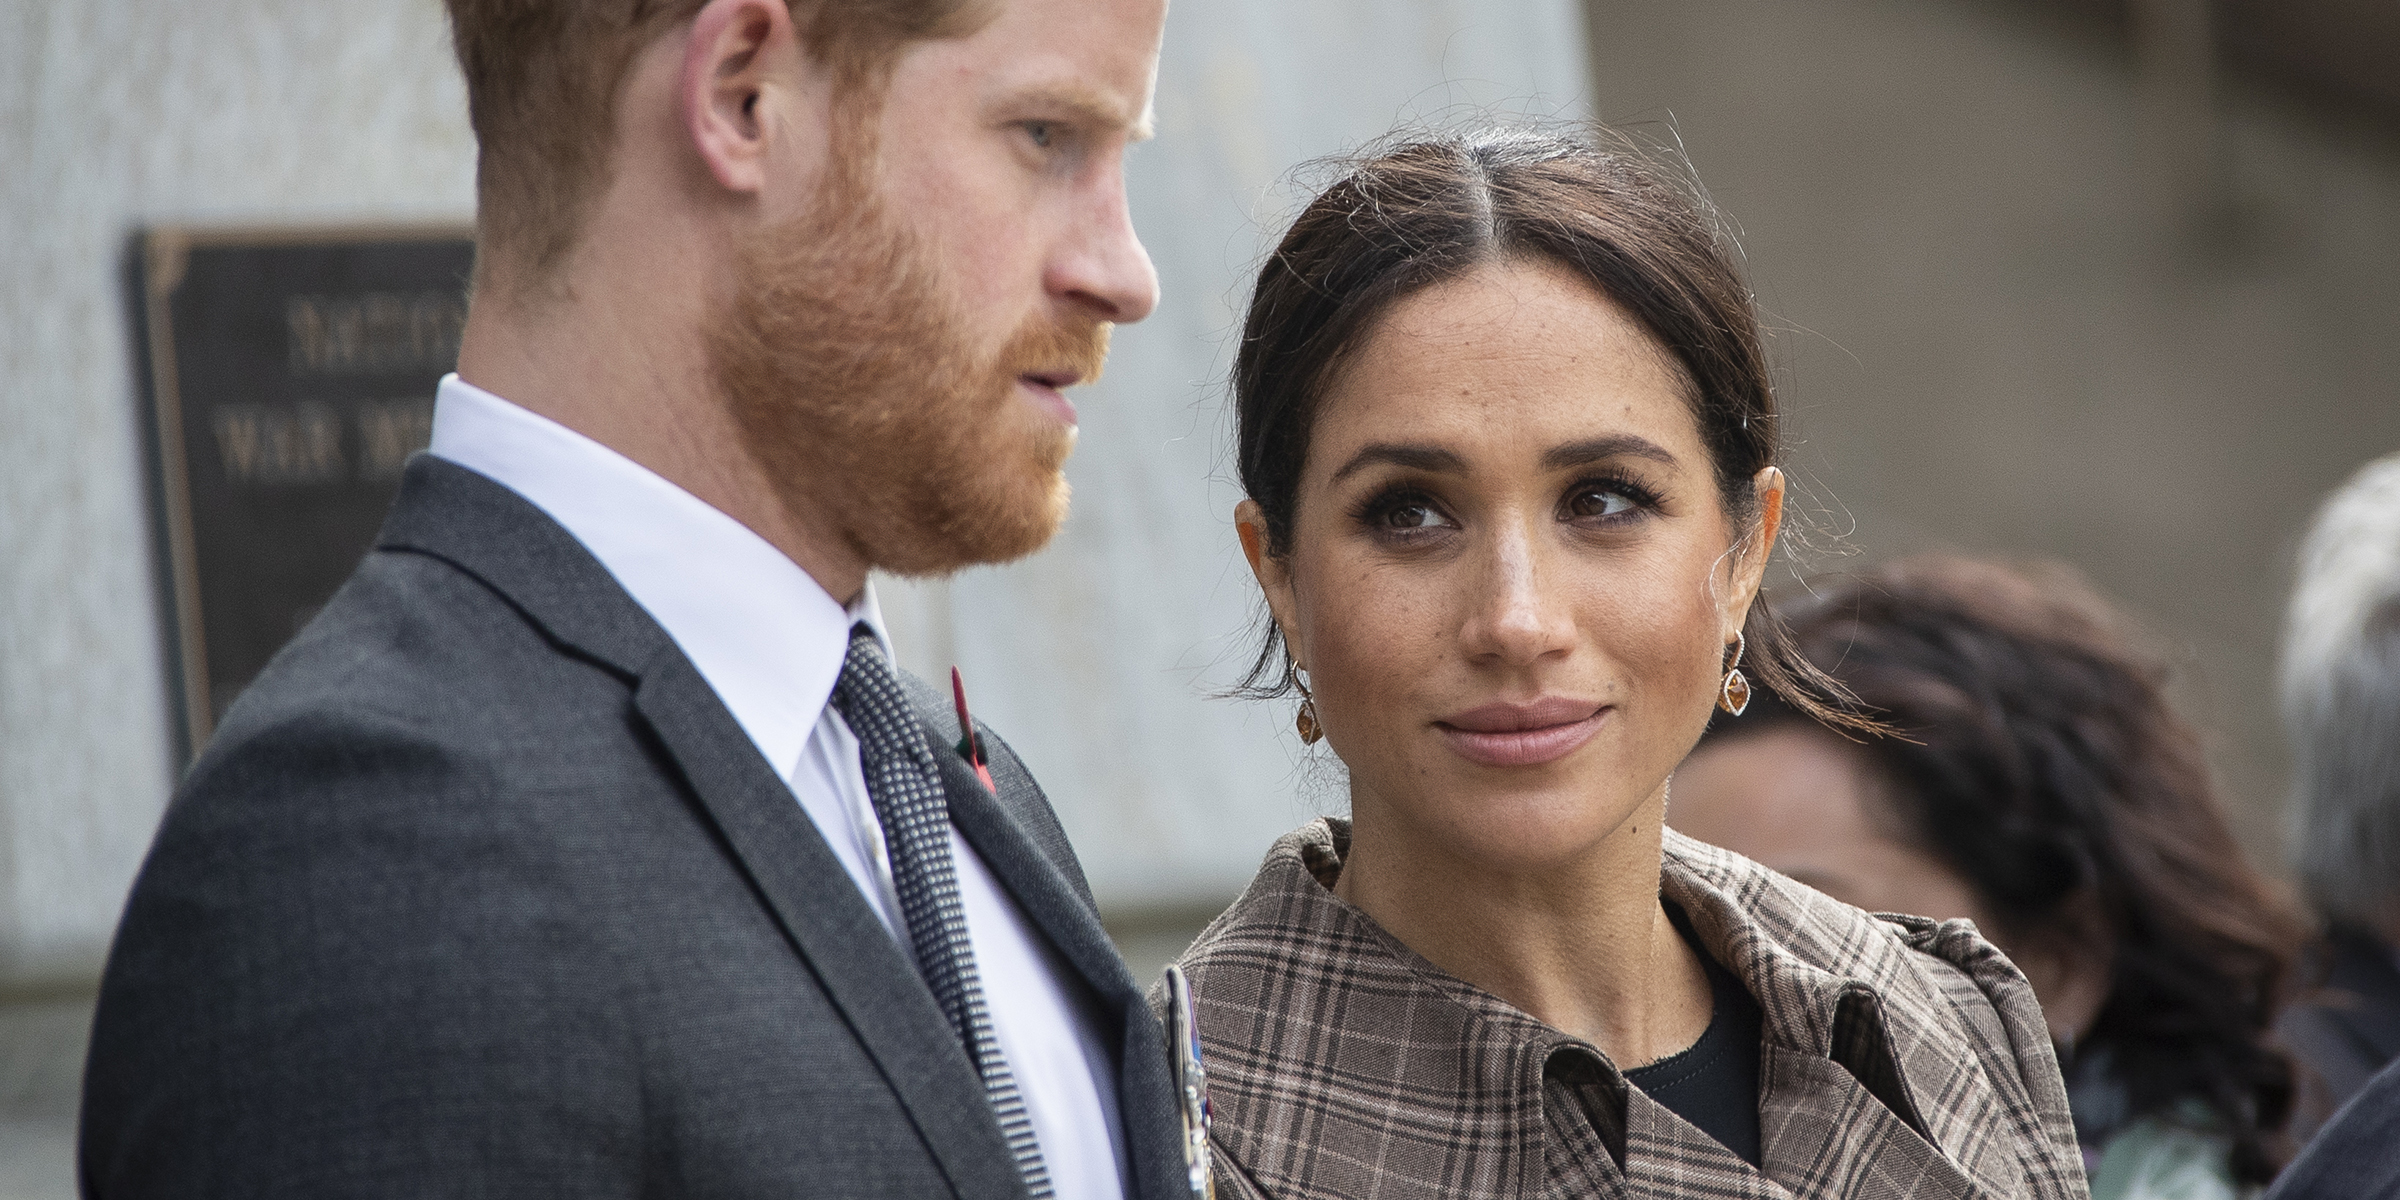 Could Prince Harry and Meghan Markle move to the United States?